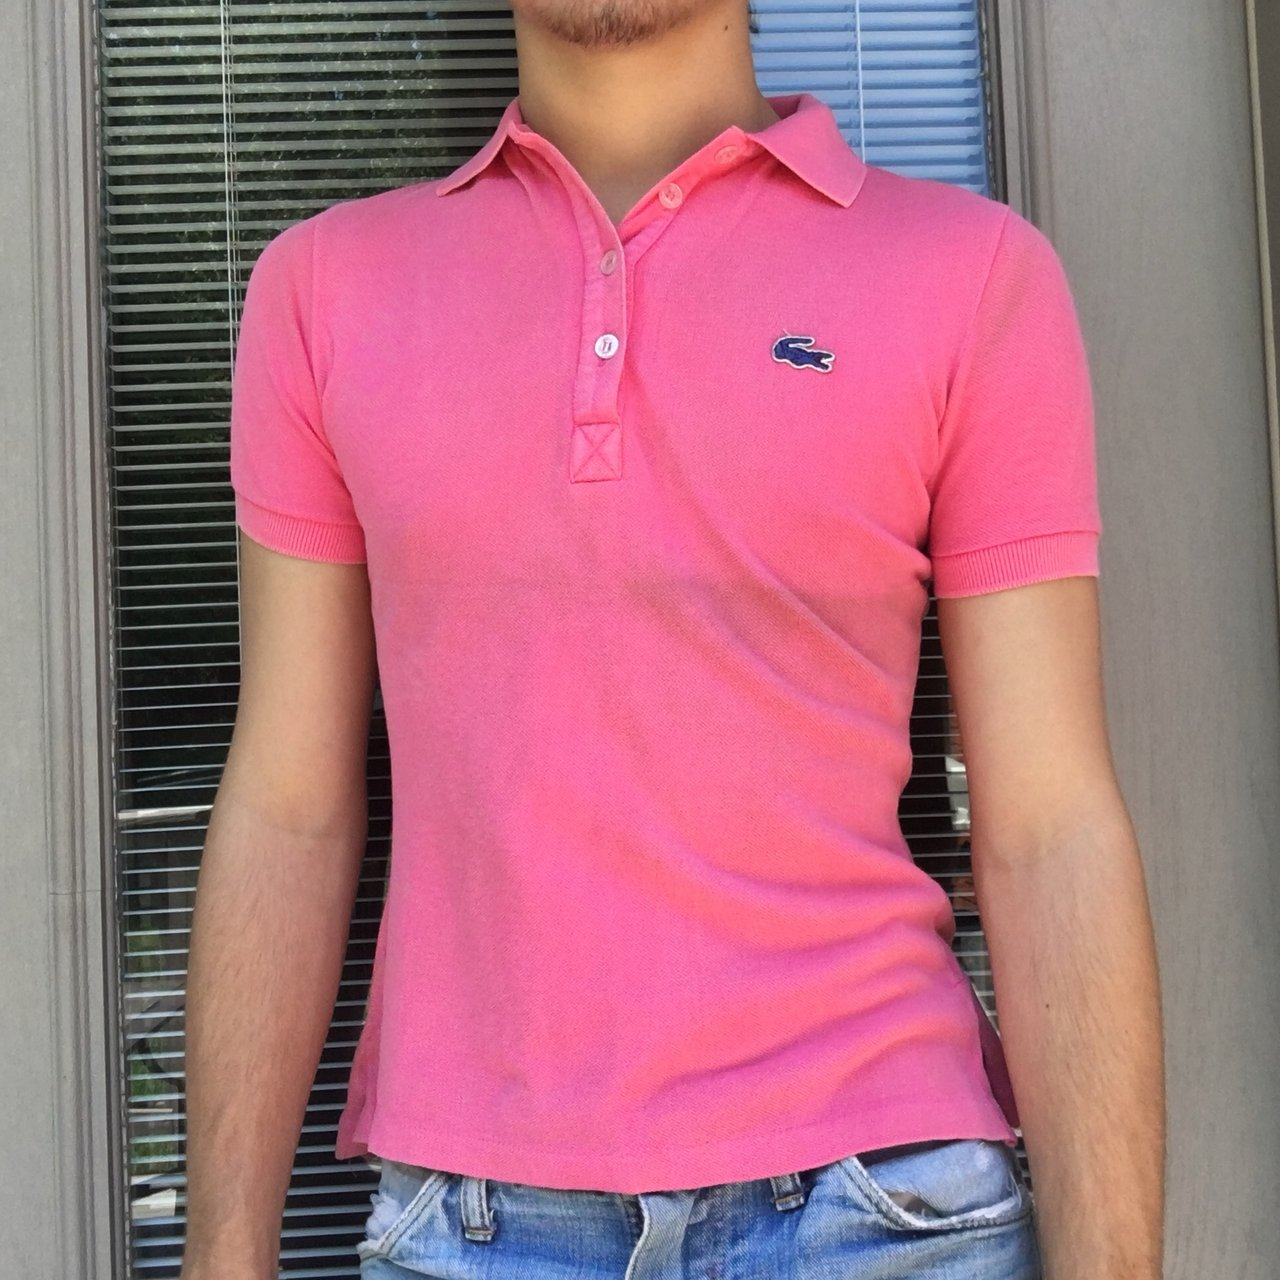 29b5b2029 Vintage Lacoste polo top in flamingo pink with embroidered a - Depop